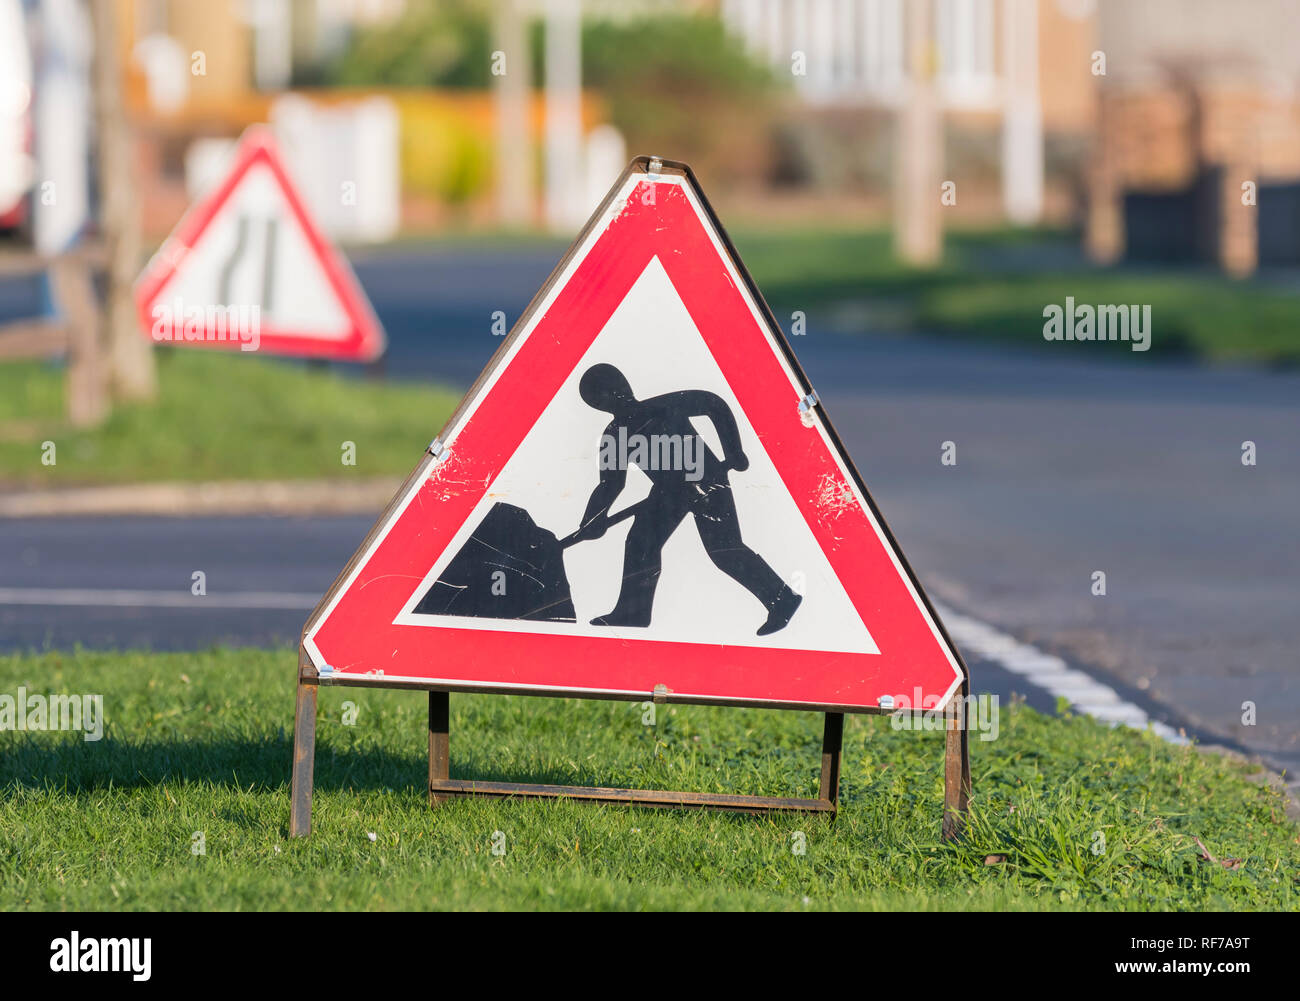 Triangular free-standing roadworks warning sign by the side of a road in England, UK. - Stock Image